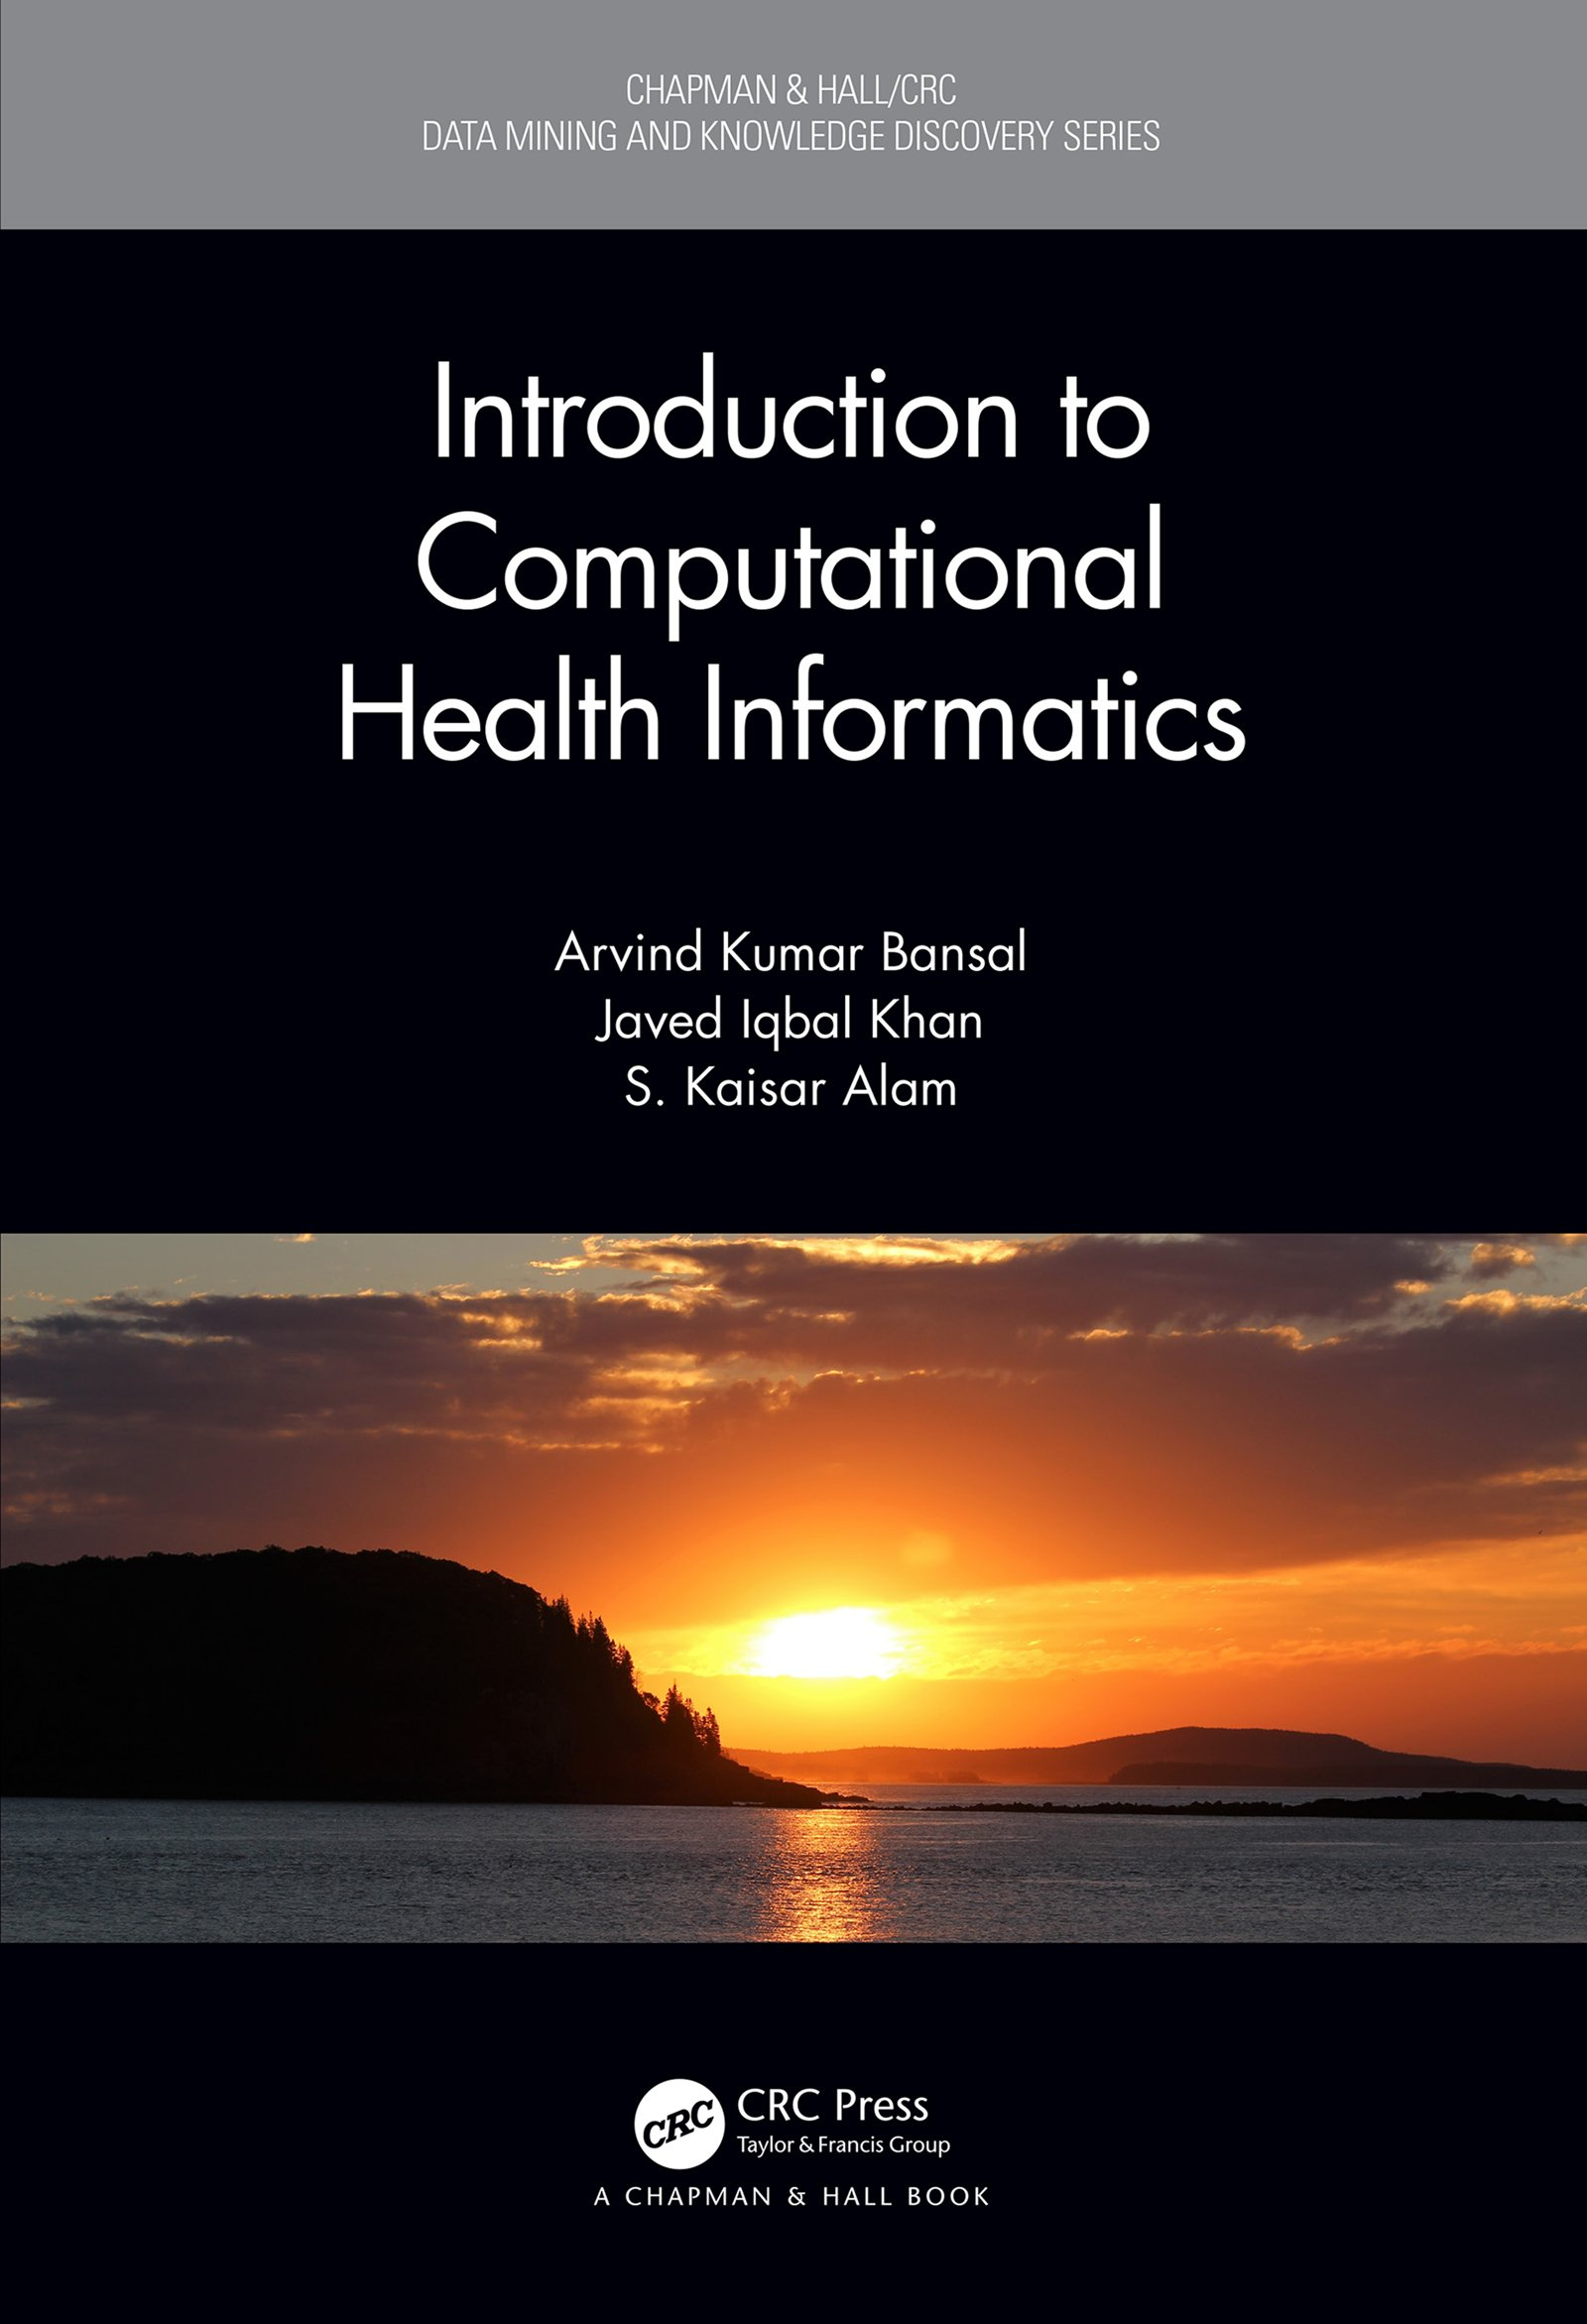 Introduction to Computational Health Informatics book cover